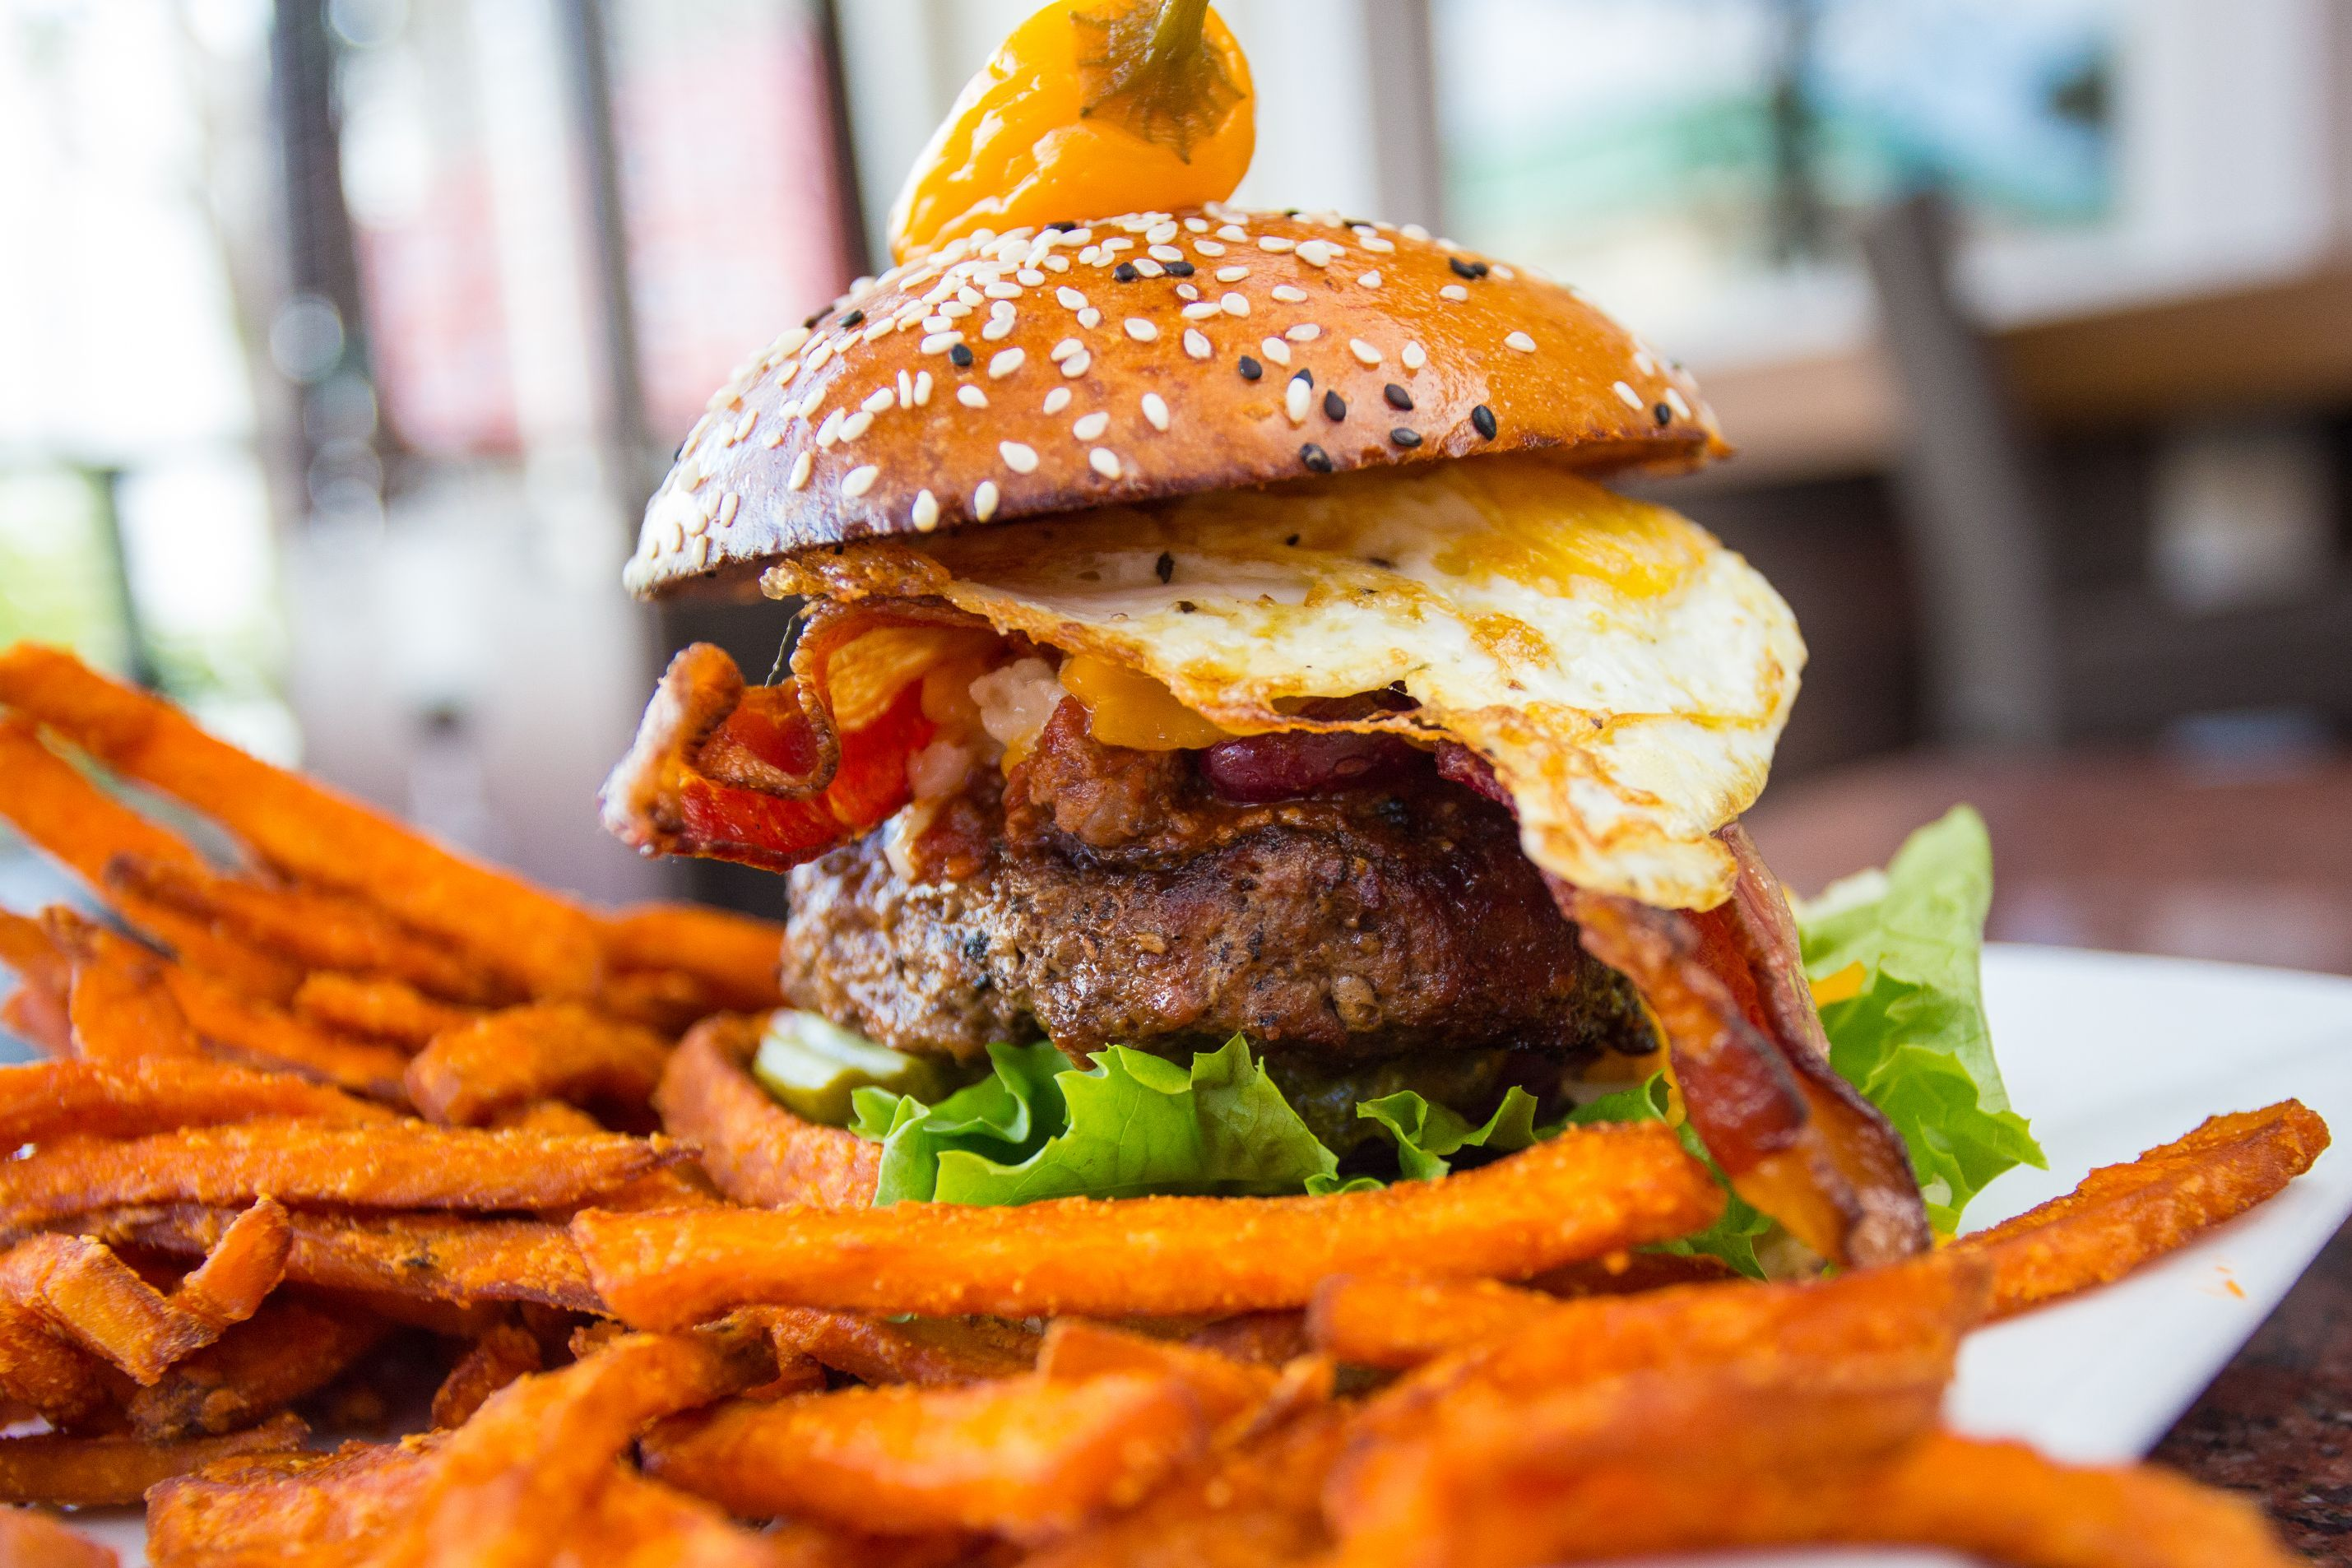 The Hangover Burger: a 7-oz. burger with chili, bacon, jack and cheddar cheese, caramelized onions and a sunny-side egg. Topped with a habanero pepper